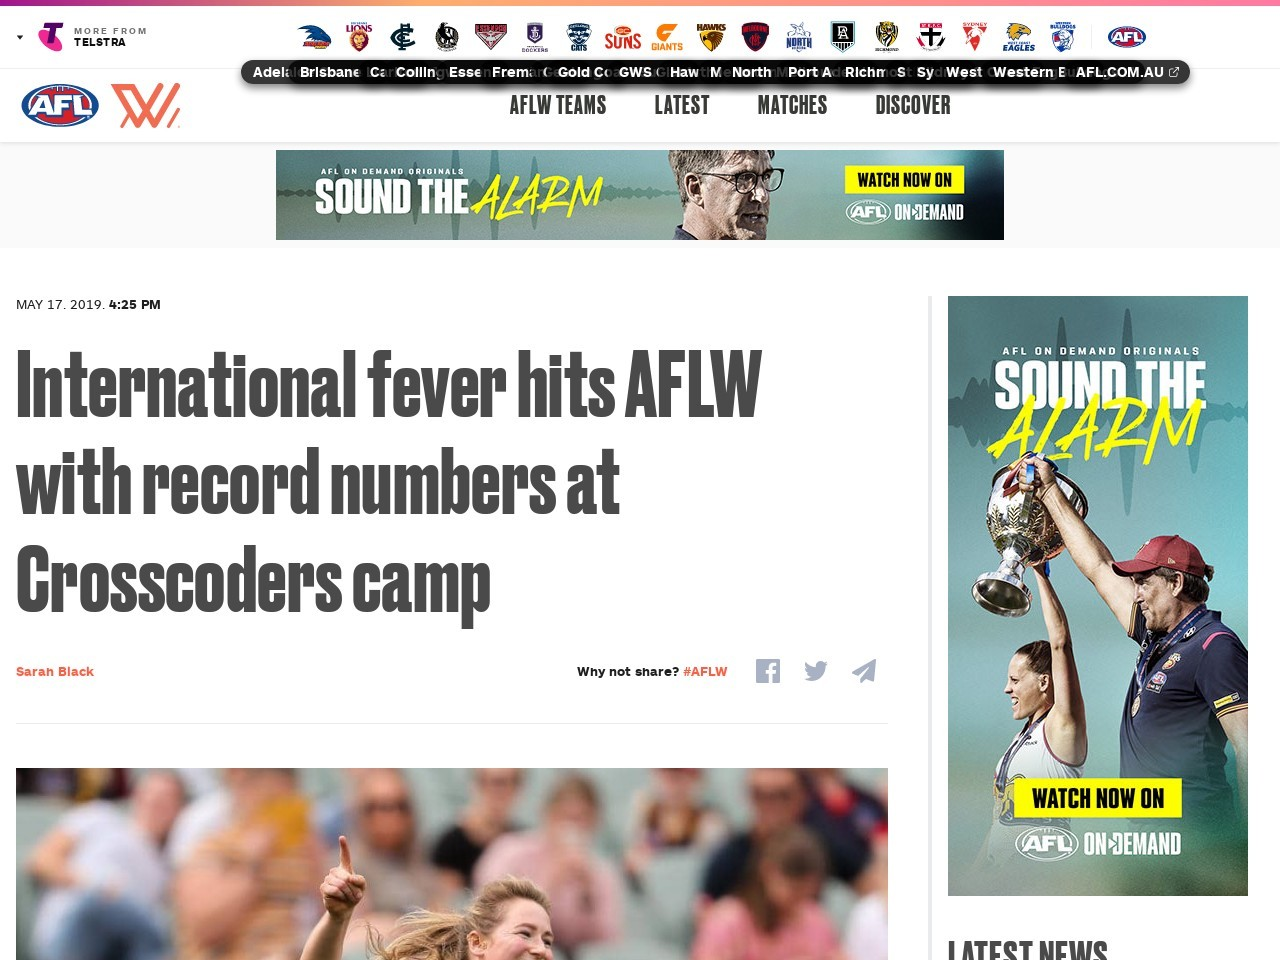 International fever hits AFLW with record numbers at Crosscoders camp